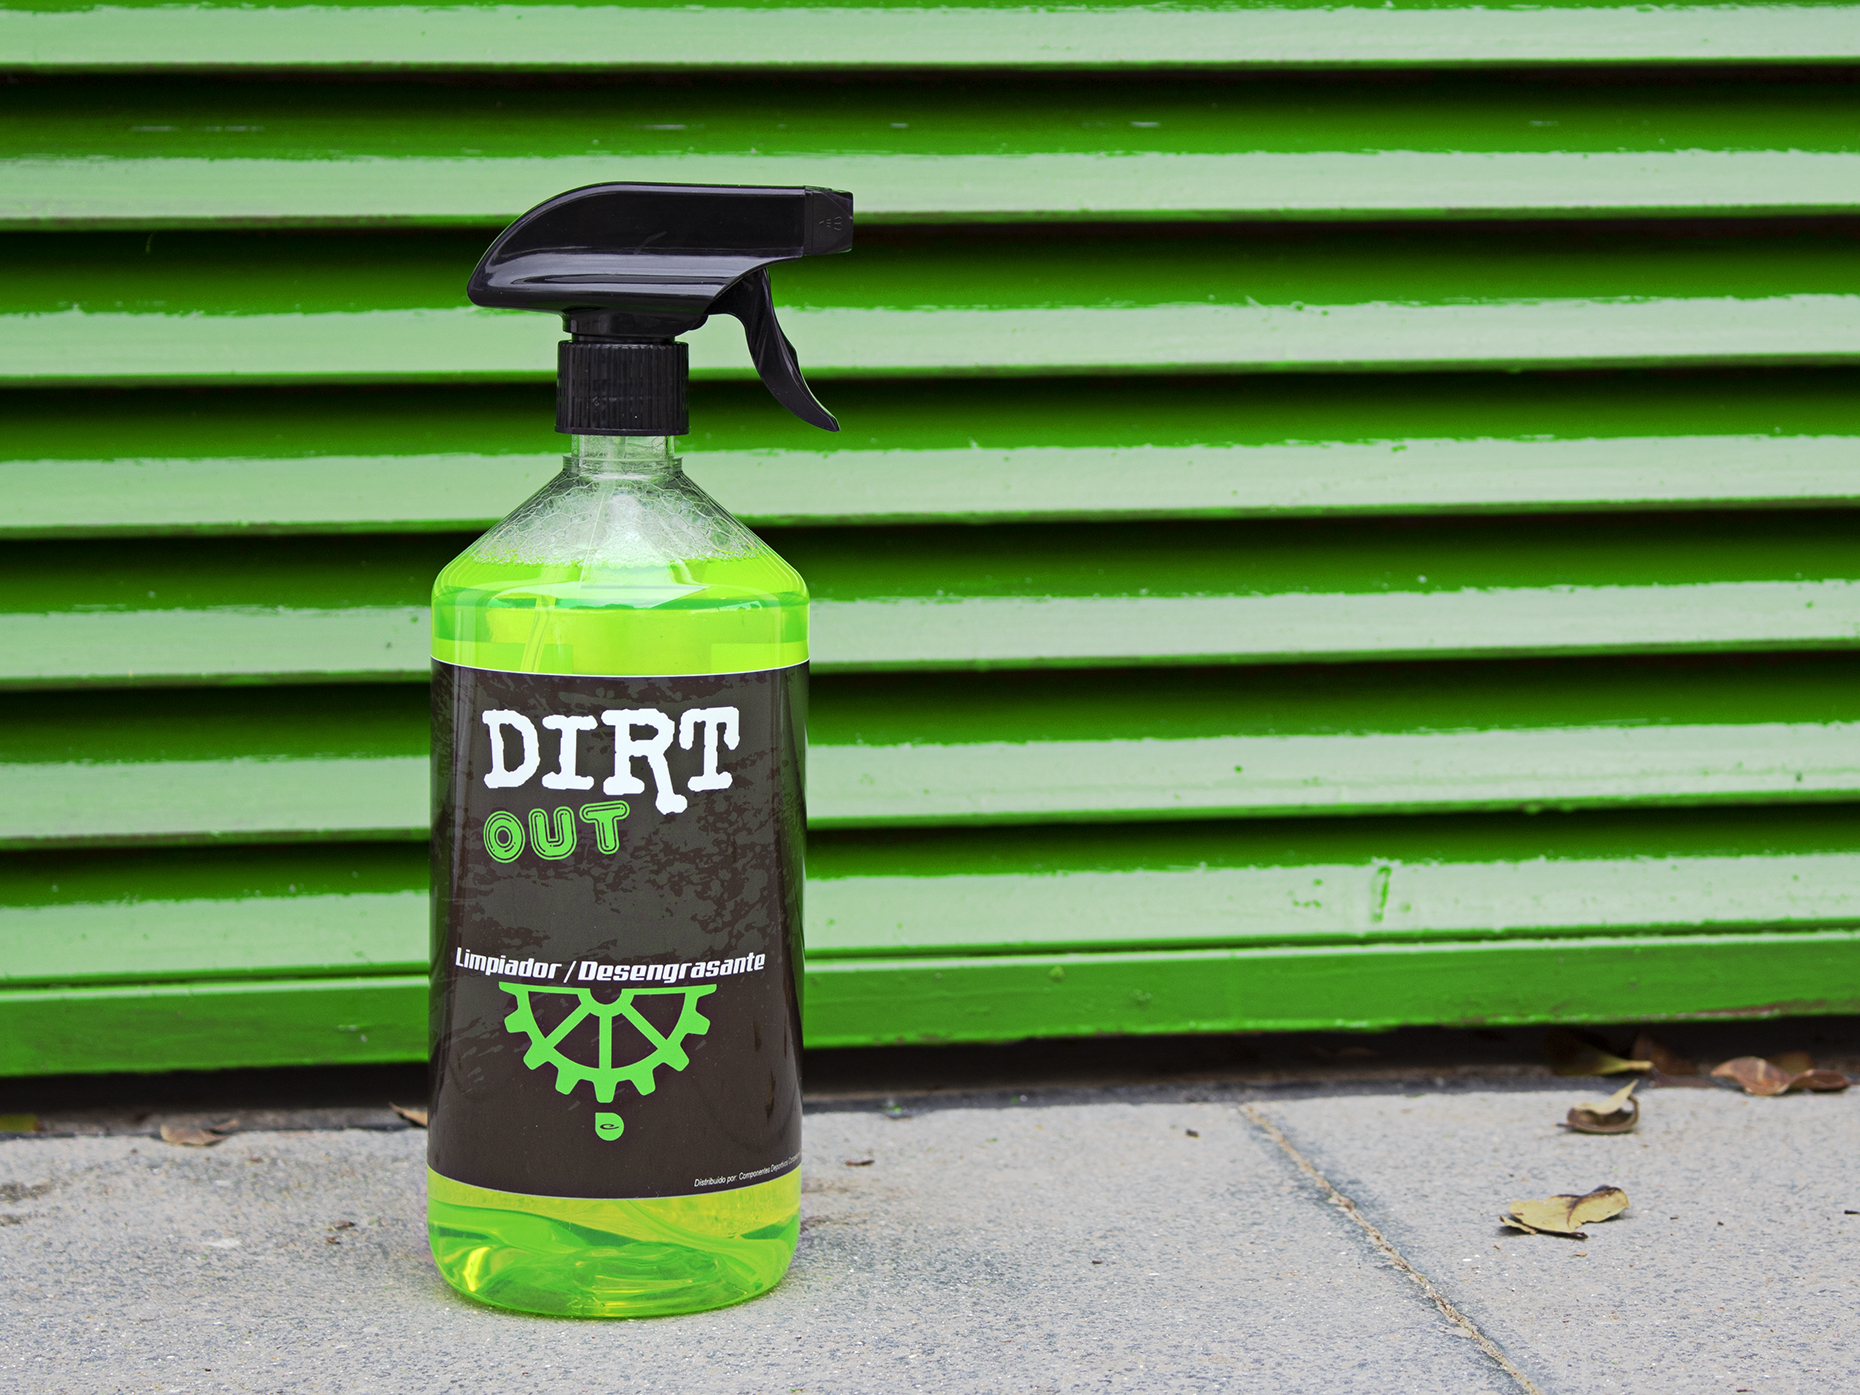 Dirt Out